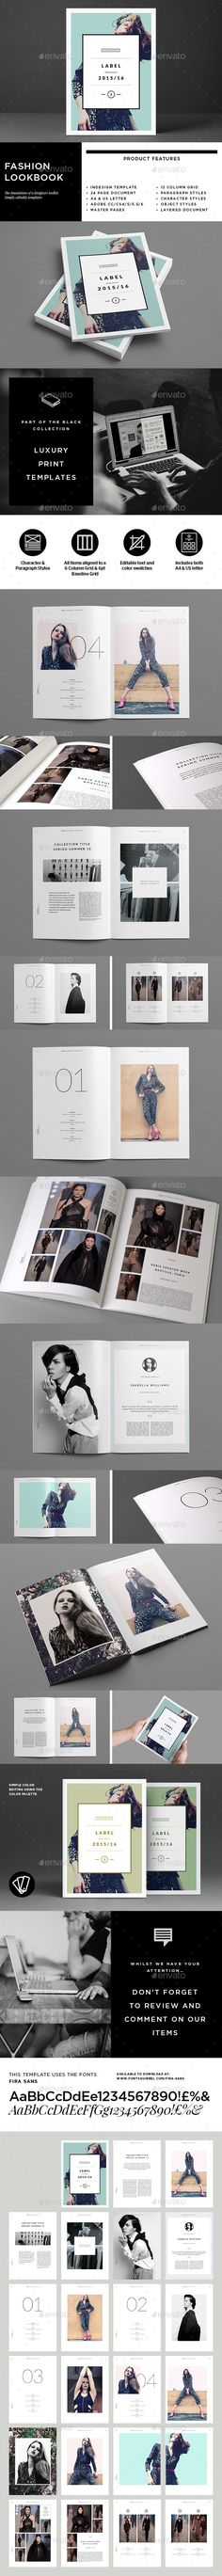 Fashion Lookbook — InDesign INDD #print #catalogue • Available here → https://graphicriver.net/item/fashion-lookbook/9299427?ref=pxcr